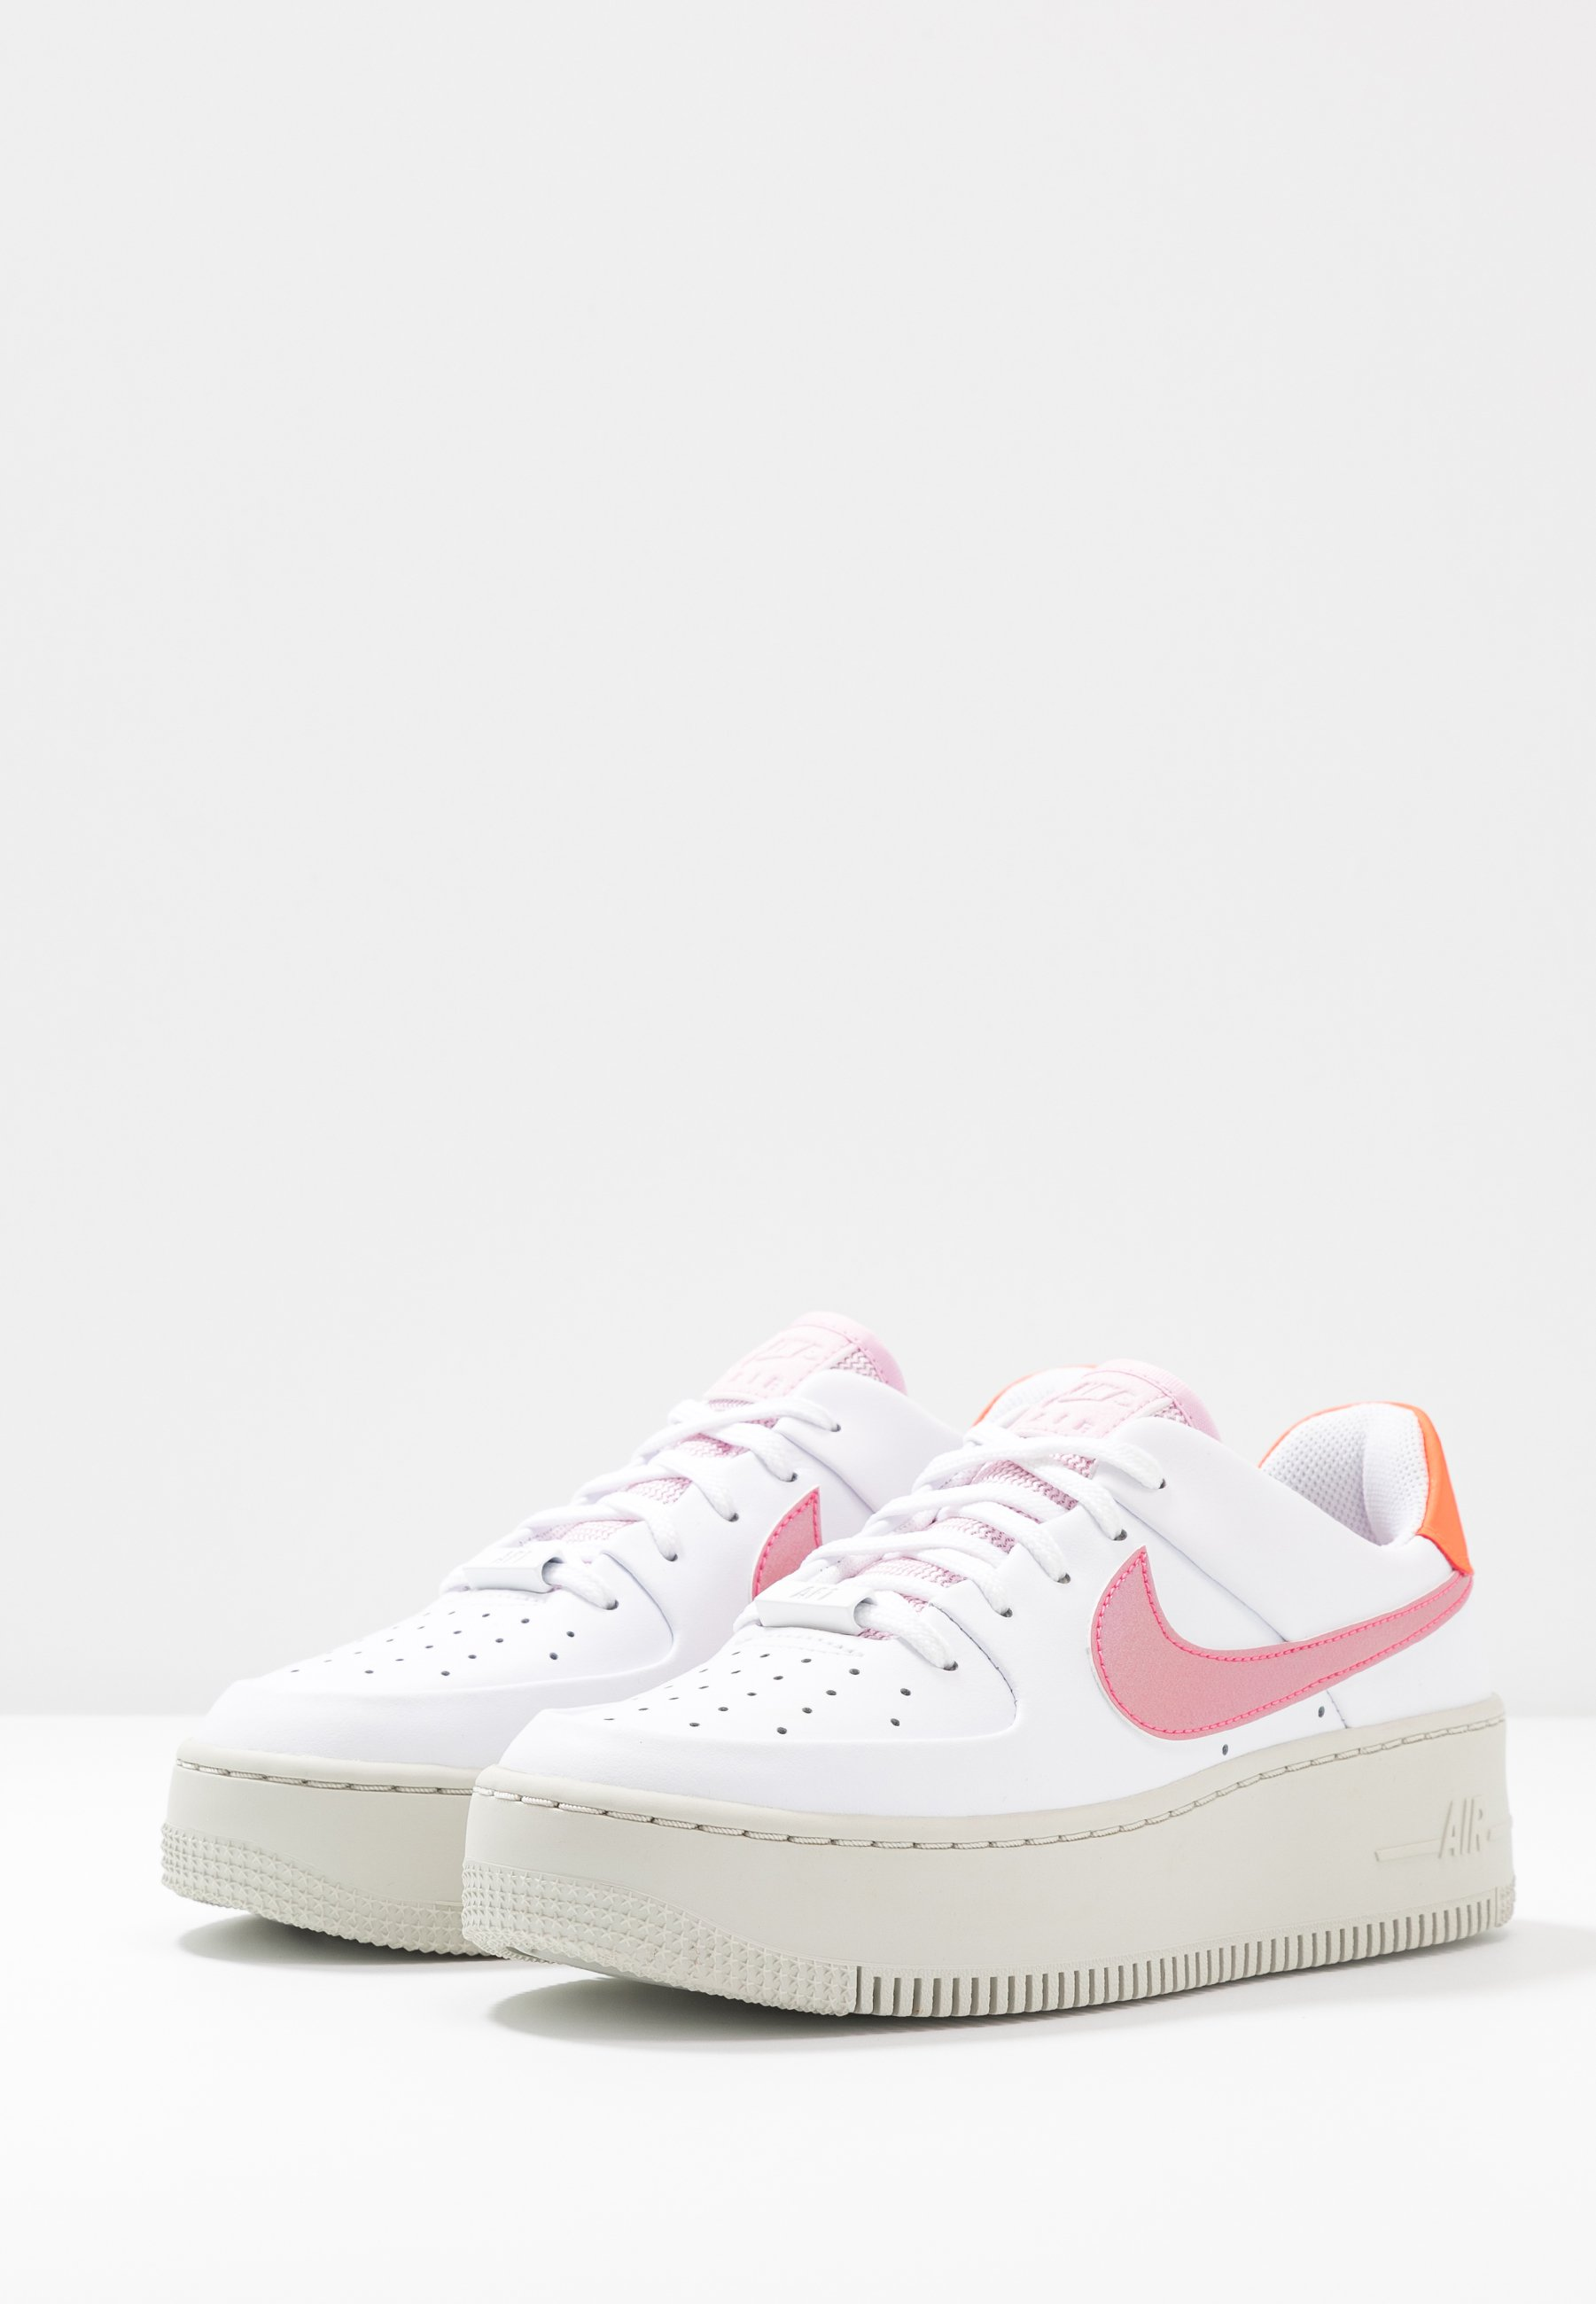 AIR FORCE 1 SAGE Sneakers laag light bonehyper crimsonpink foamdigital pinkwhite